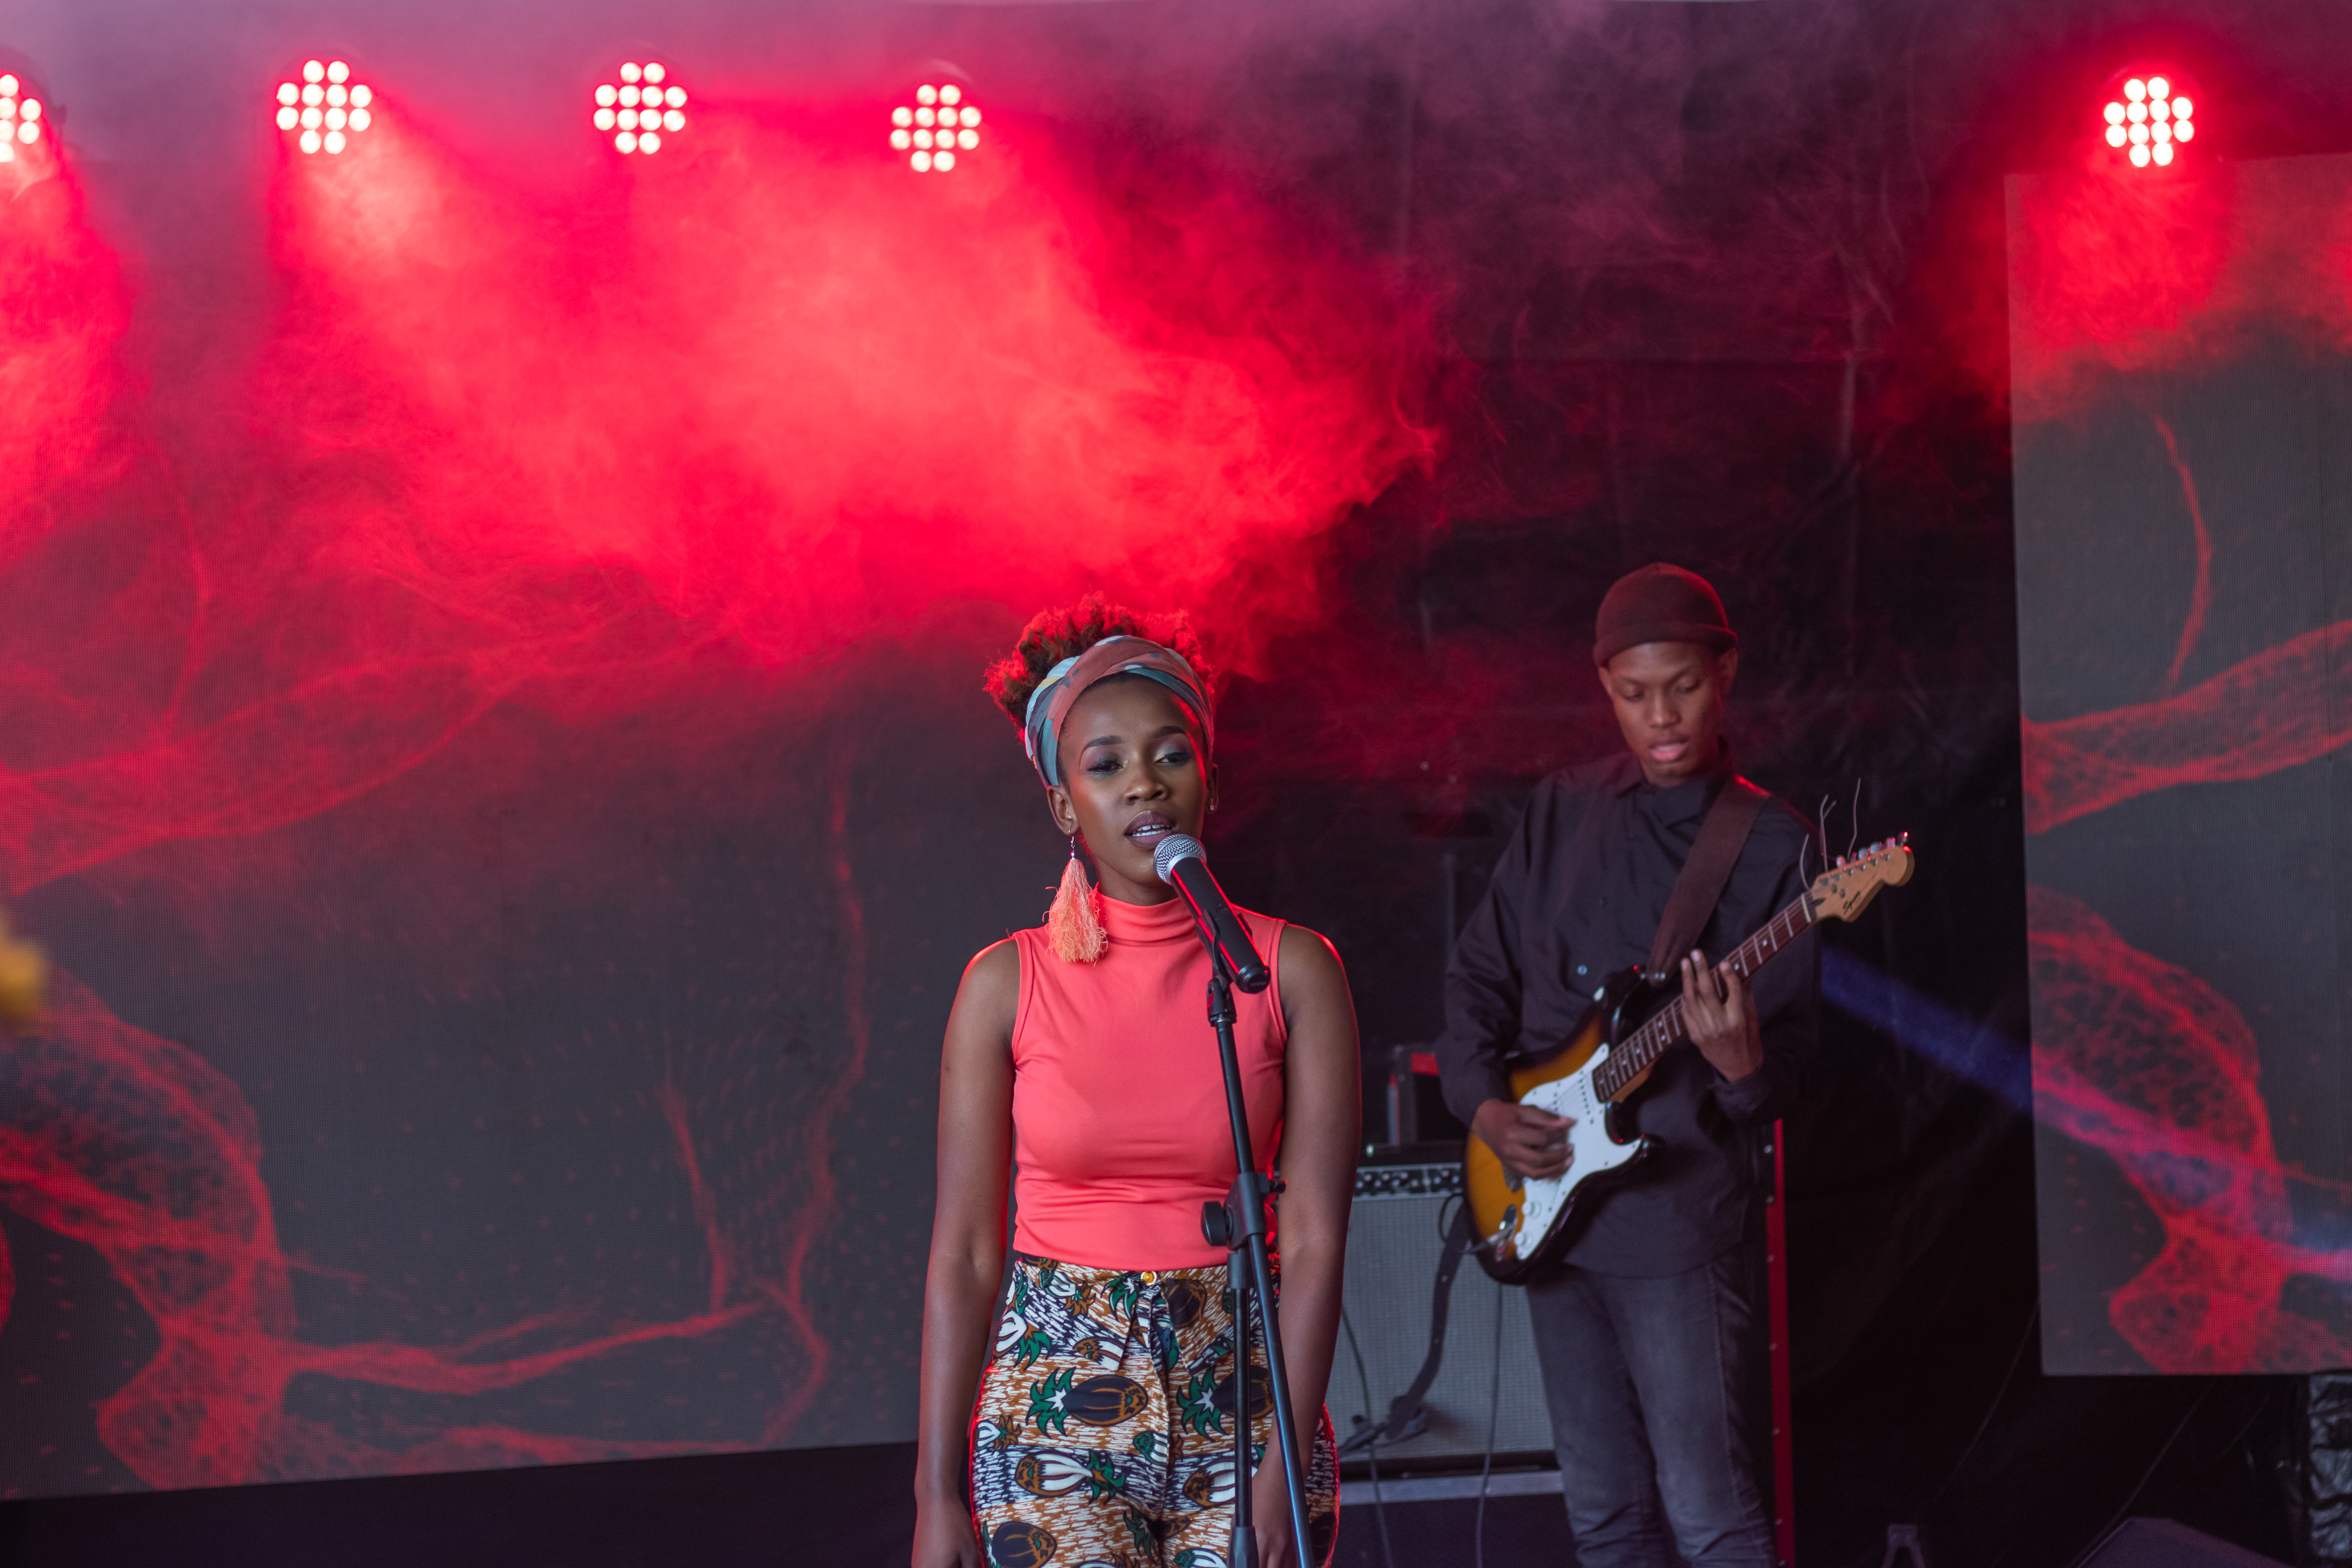 Musician Vuyo Brown sings at a microphone, while her bassist plays in the background.